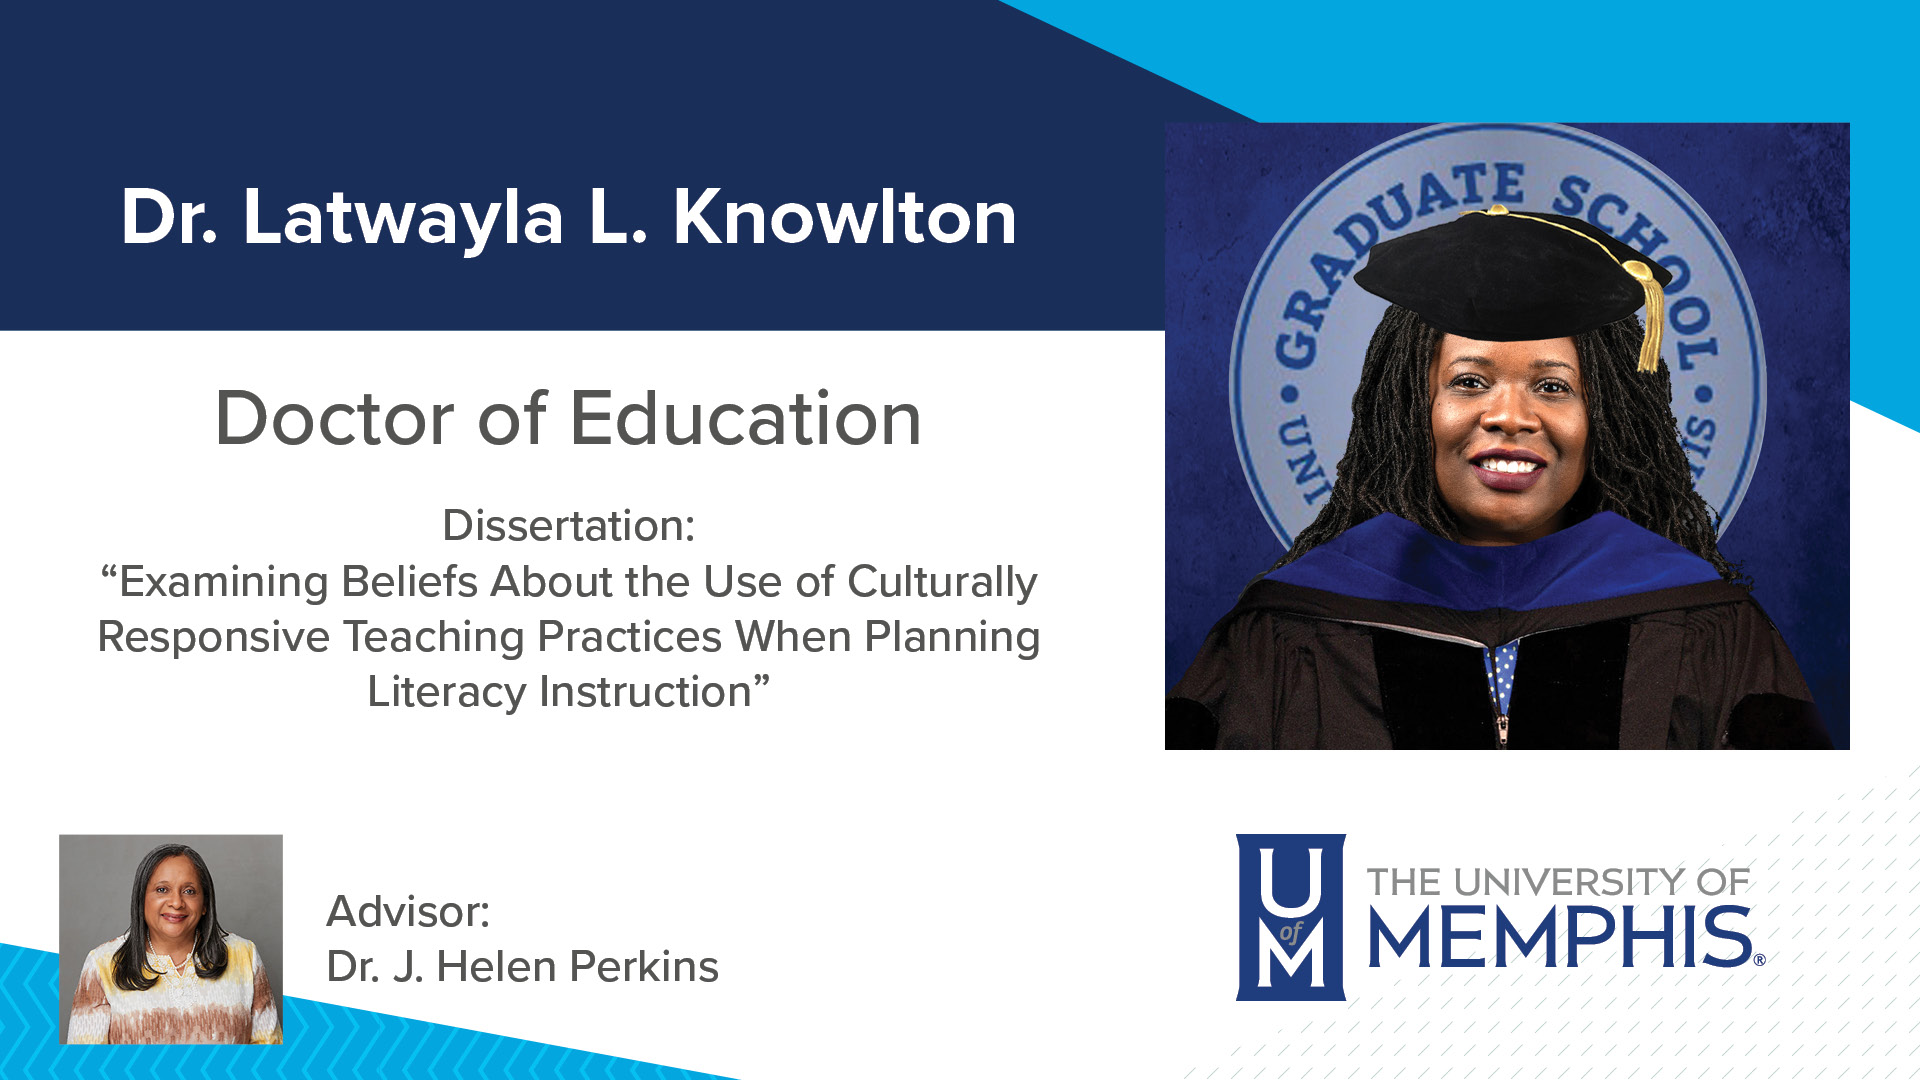 """Dr. Latwayla L. Knowlton Dissertation: """"Examining Beliefs About the Use of Culturally Responsive Teaching Practices When Planning Literacy Instruction """" Major Professor: Dr. J. Helen Perkins"""